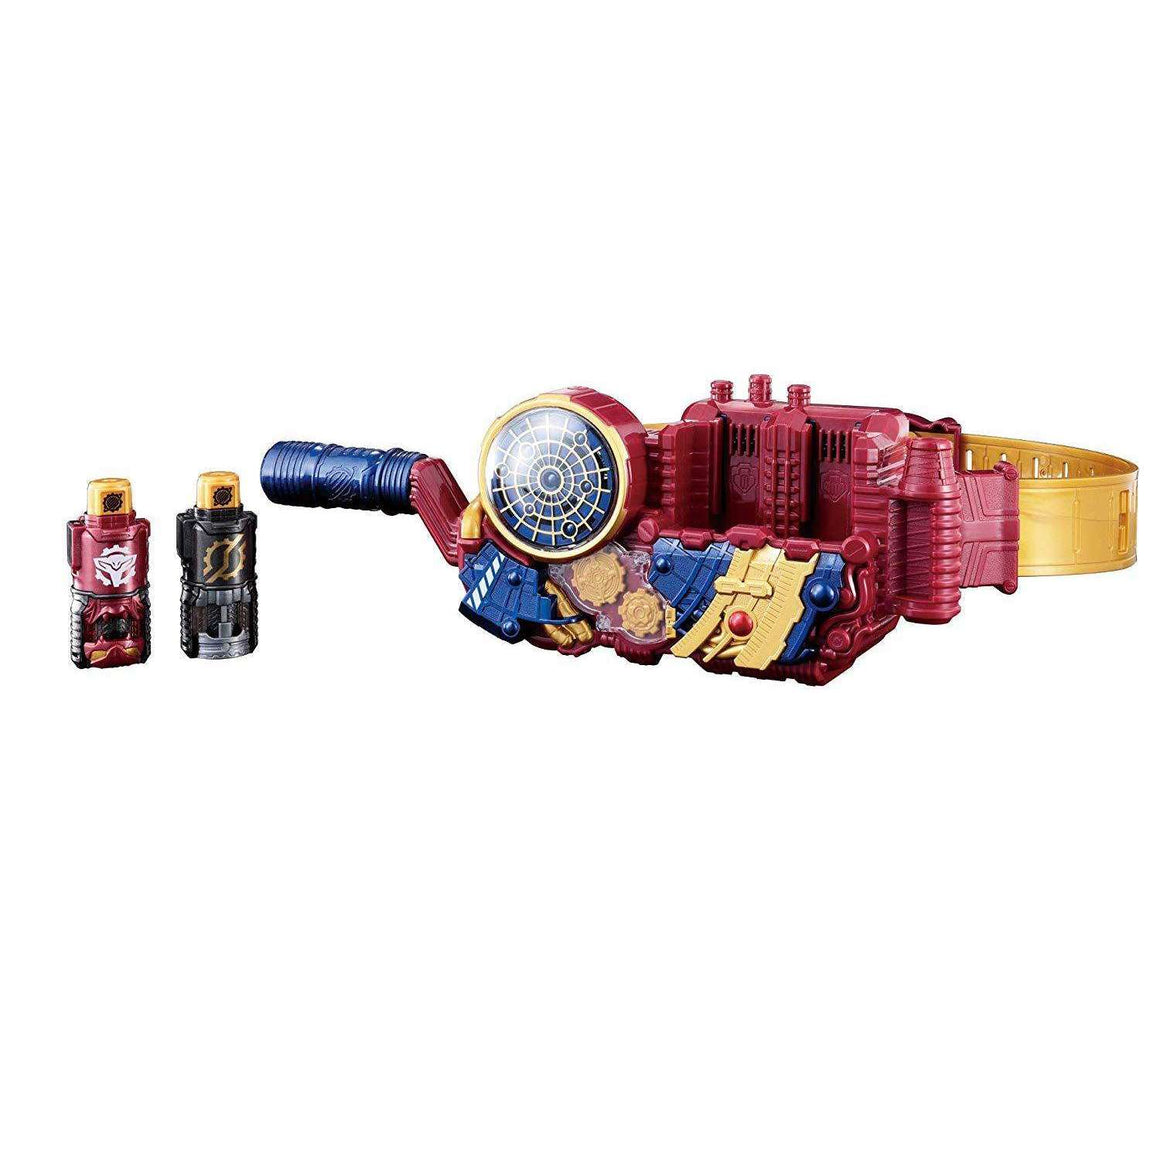 CSTOYS INTERNATIONAL:Kamen Rider Build: Henshin Belt Ver. 20th - DX Evol Driver